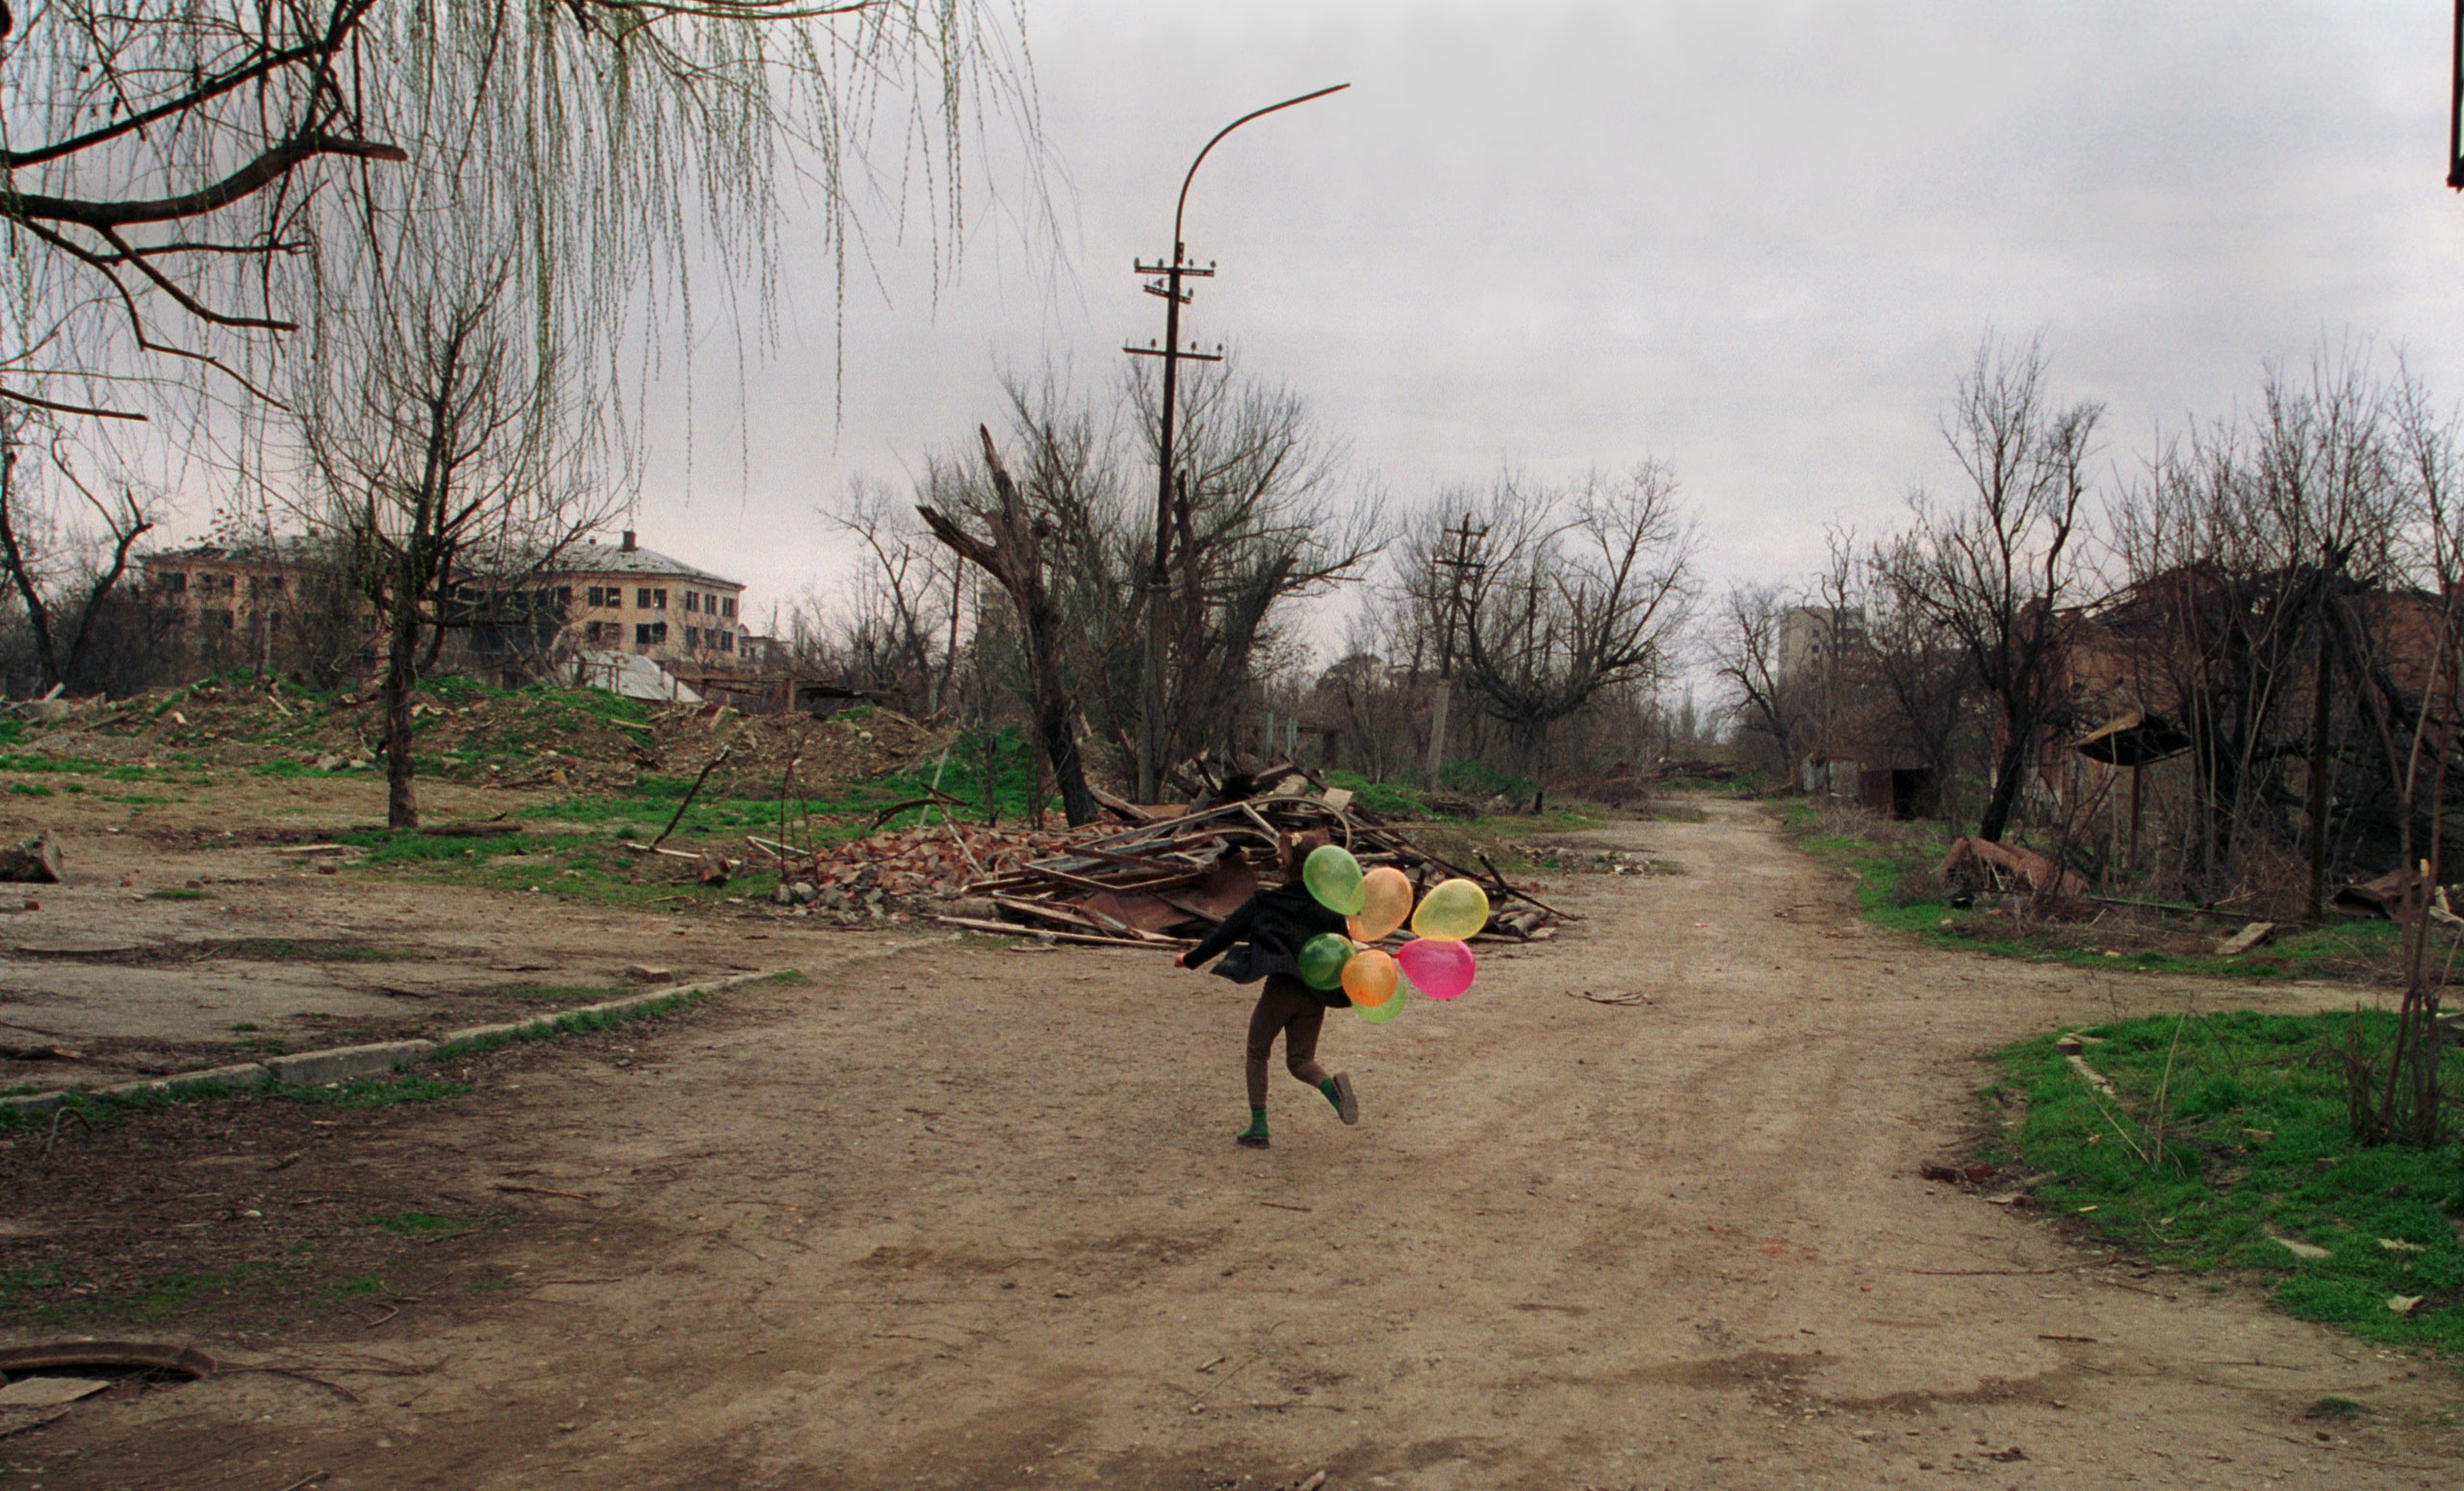 A child with balloons plays in downtown Grozny, Chechnya, March 2002.